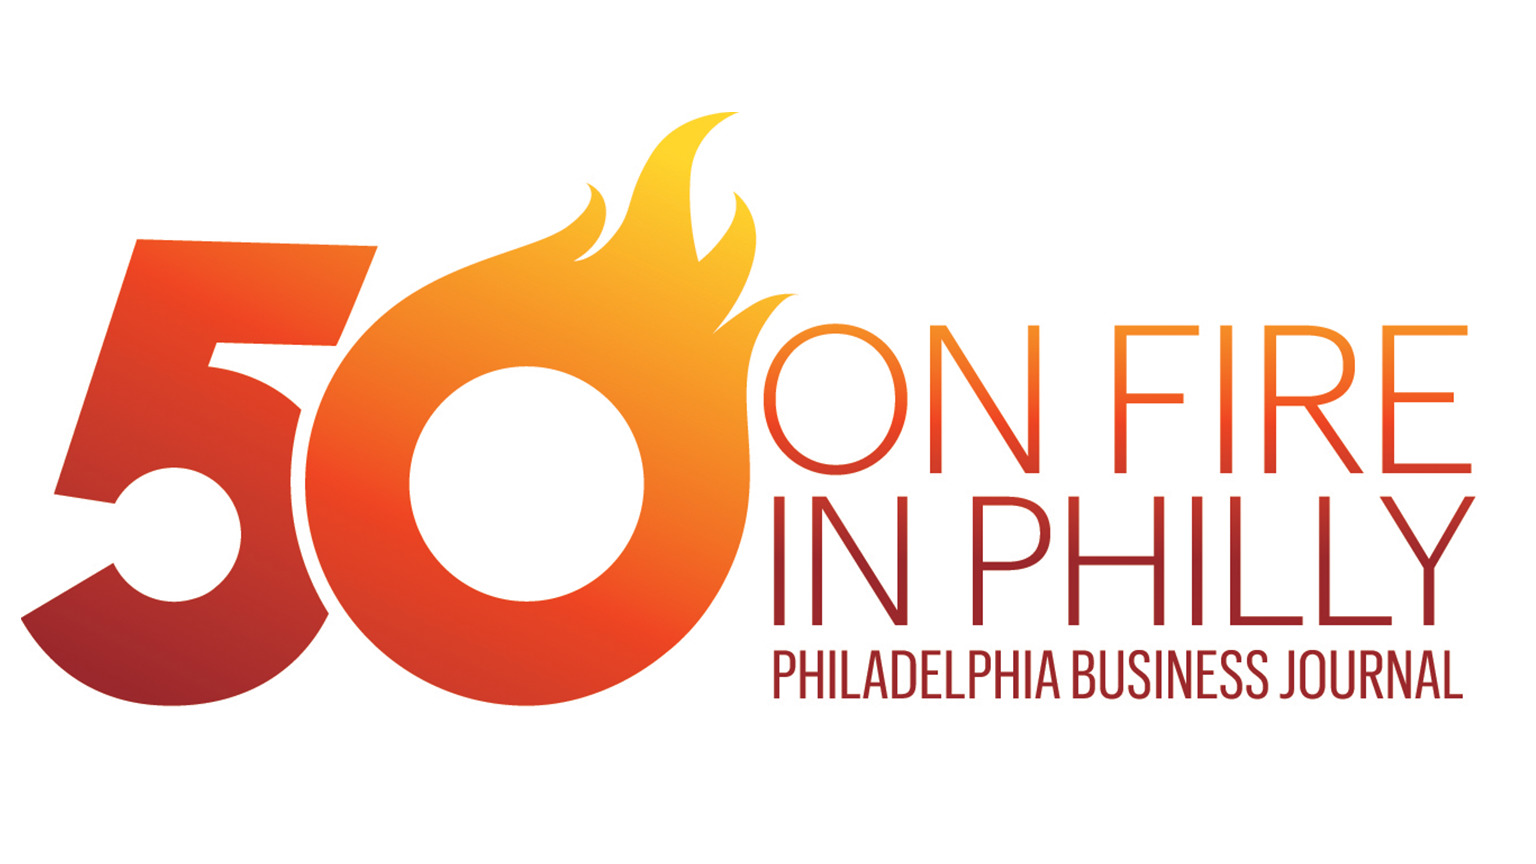 50 on fire philly